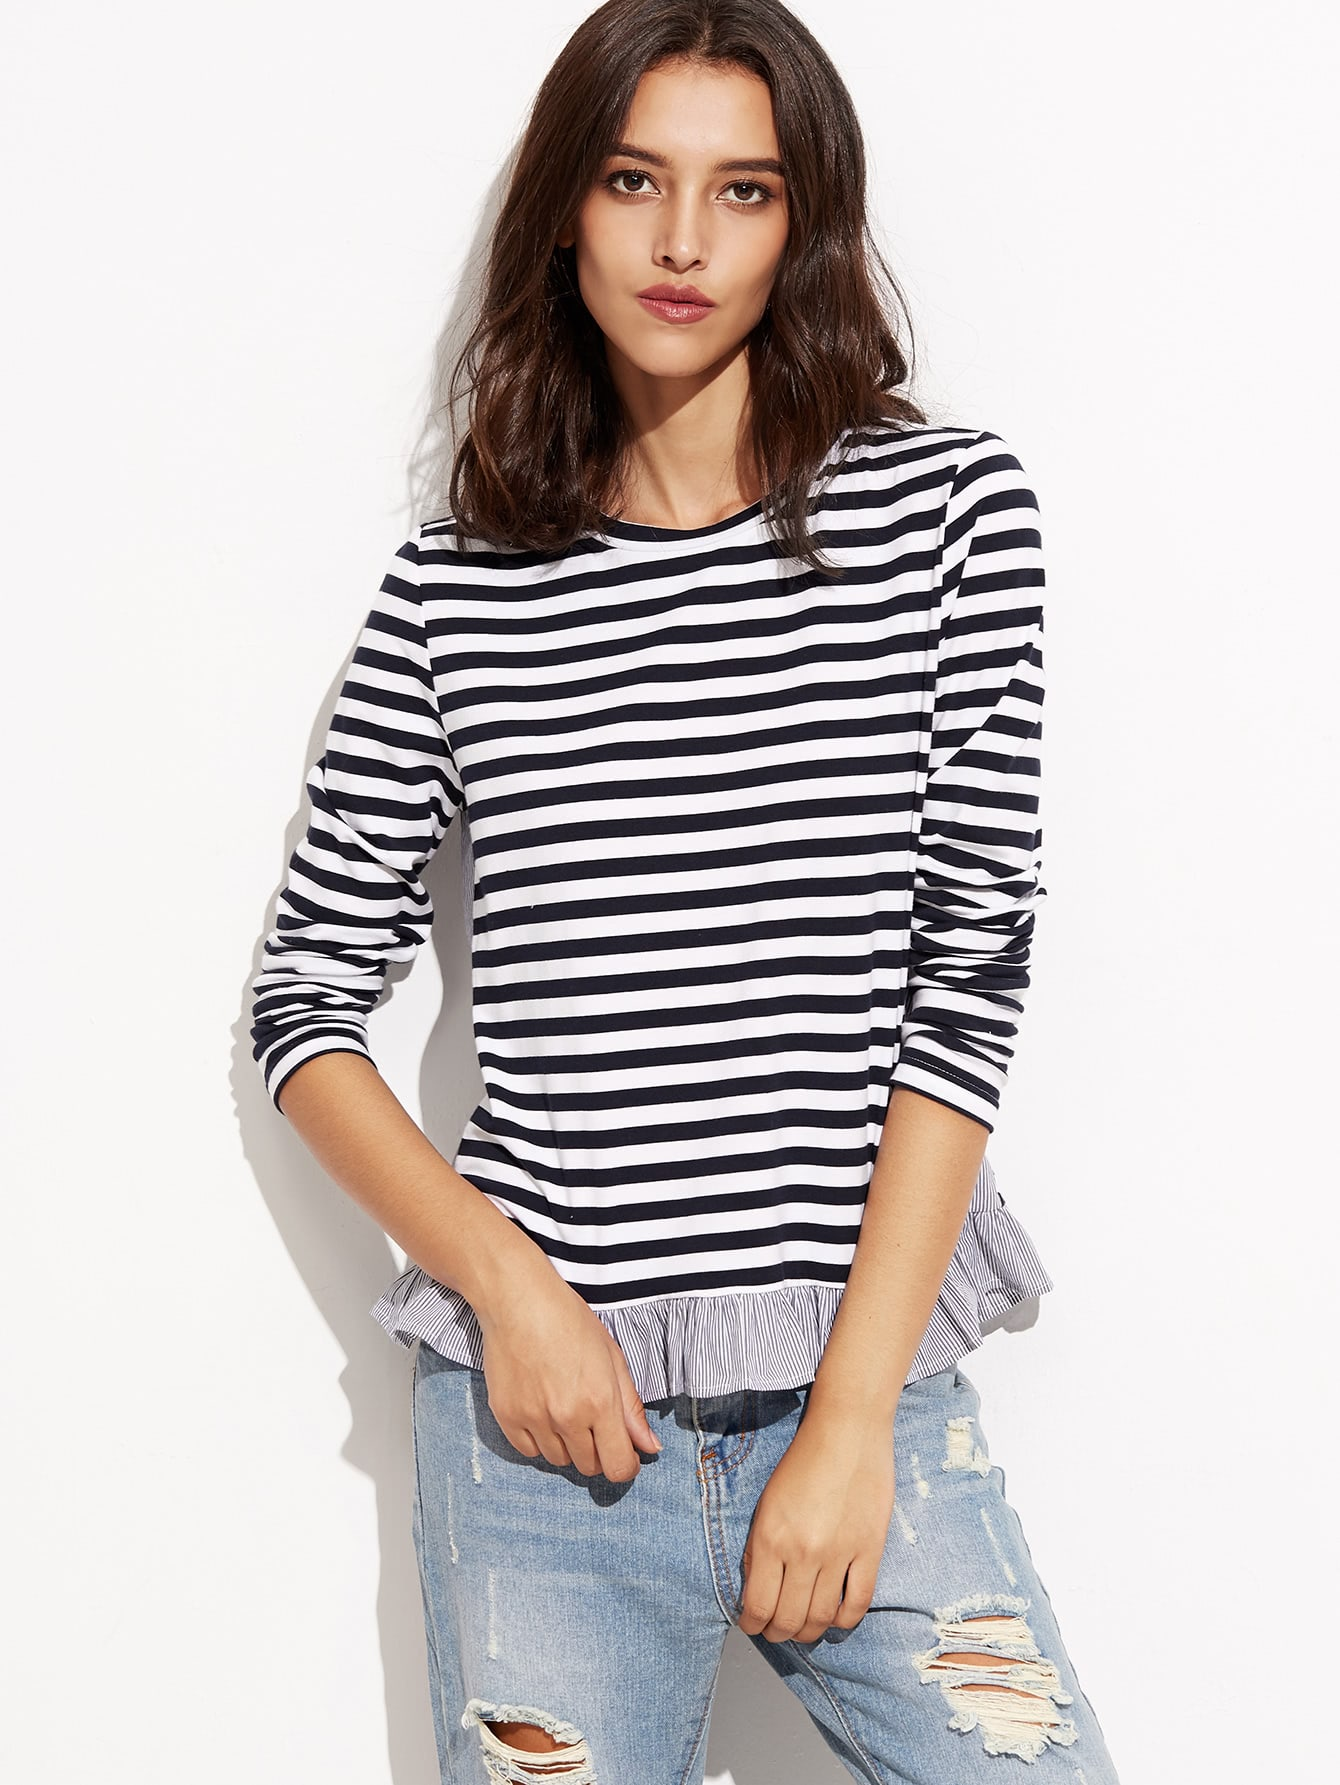 Navy And White Striped T Shirt With Ruffle Trim